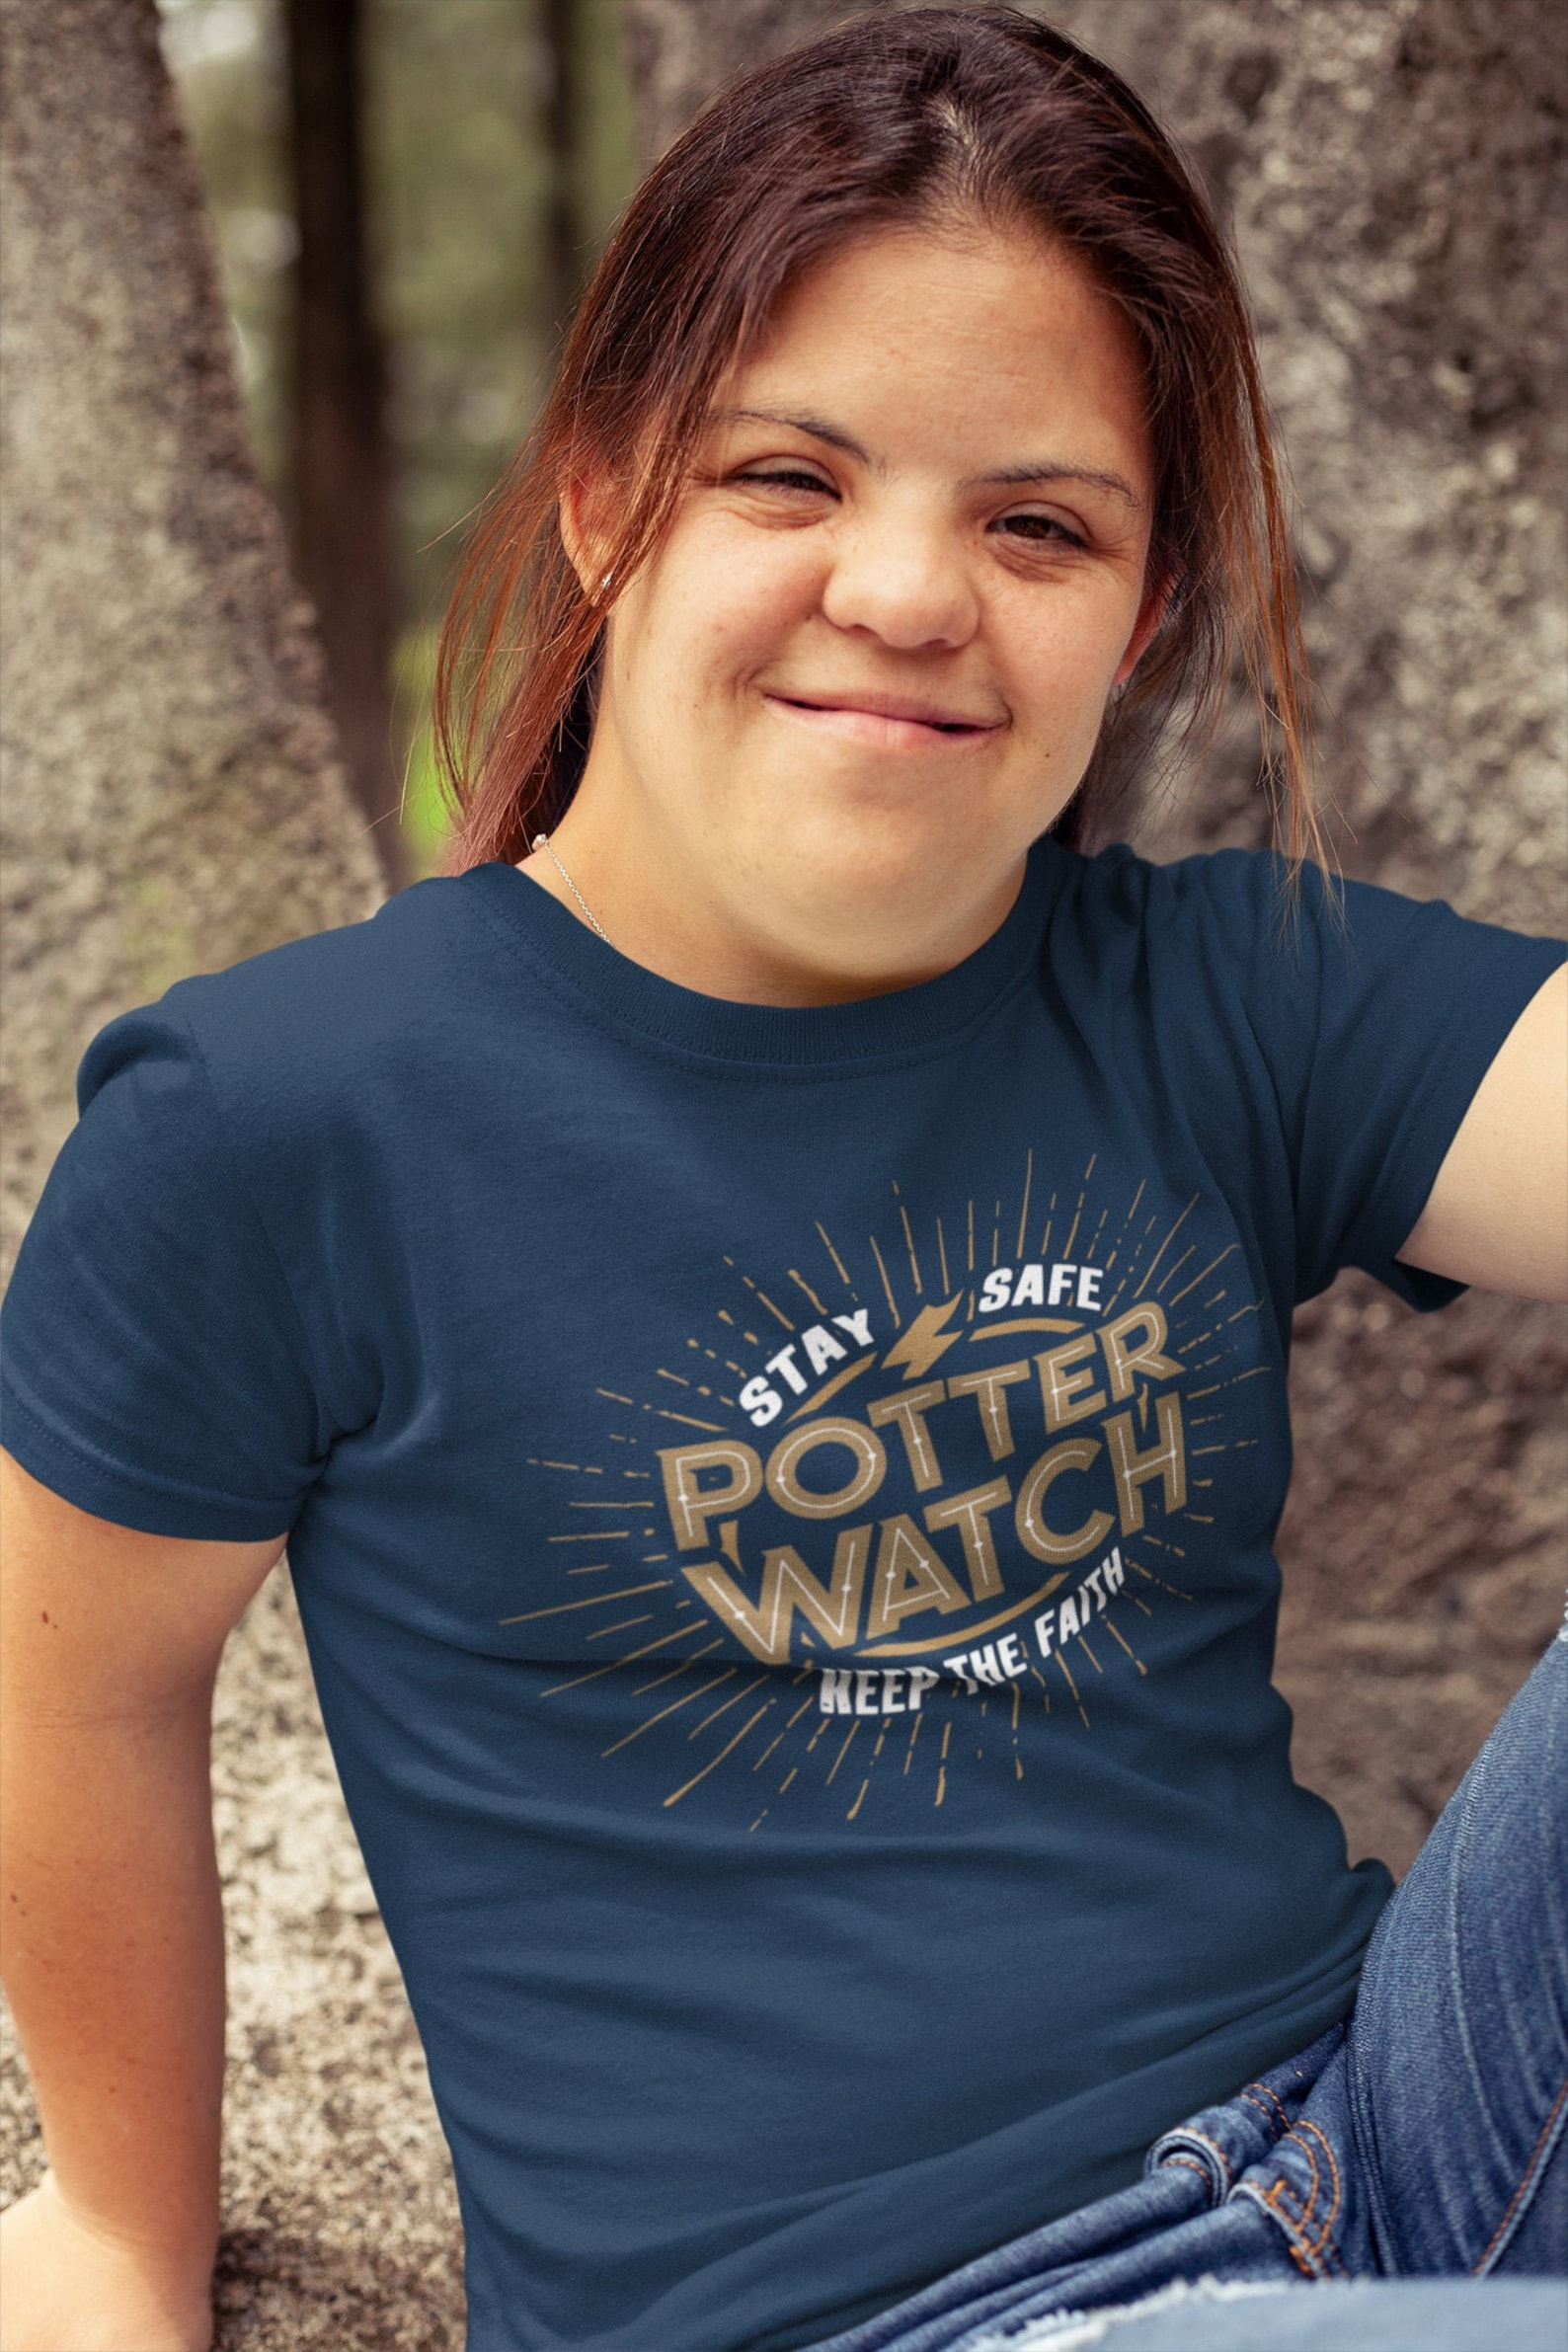 We're on the Harry Potter Watch. Girl wearing Harry Potter t-shirt